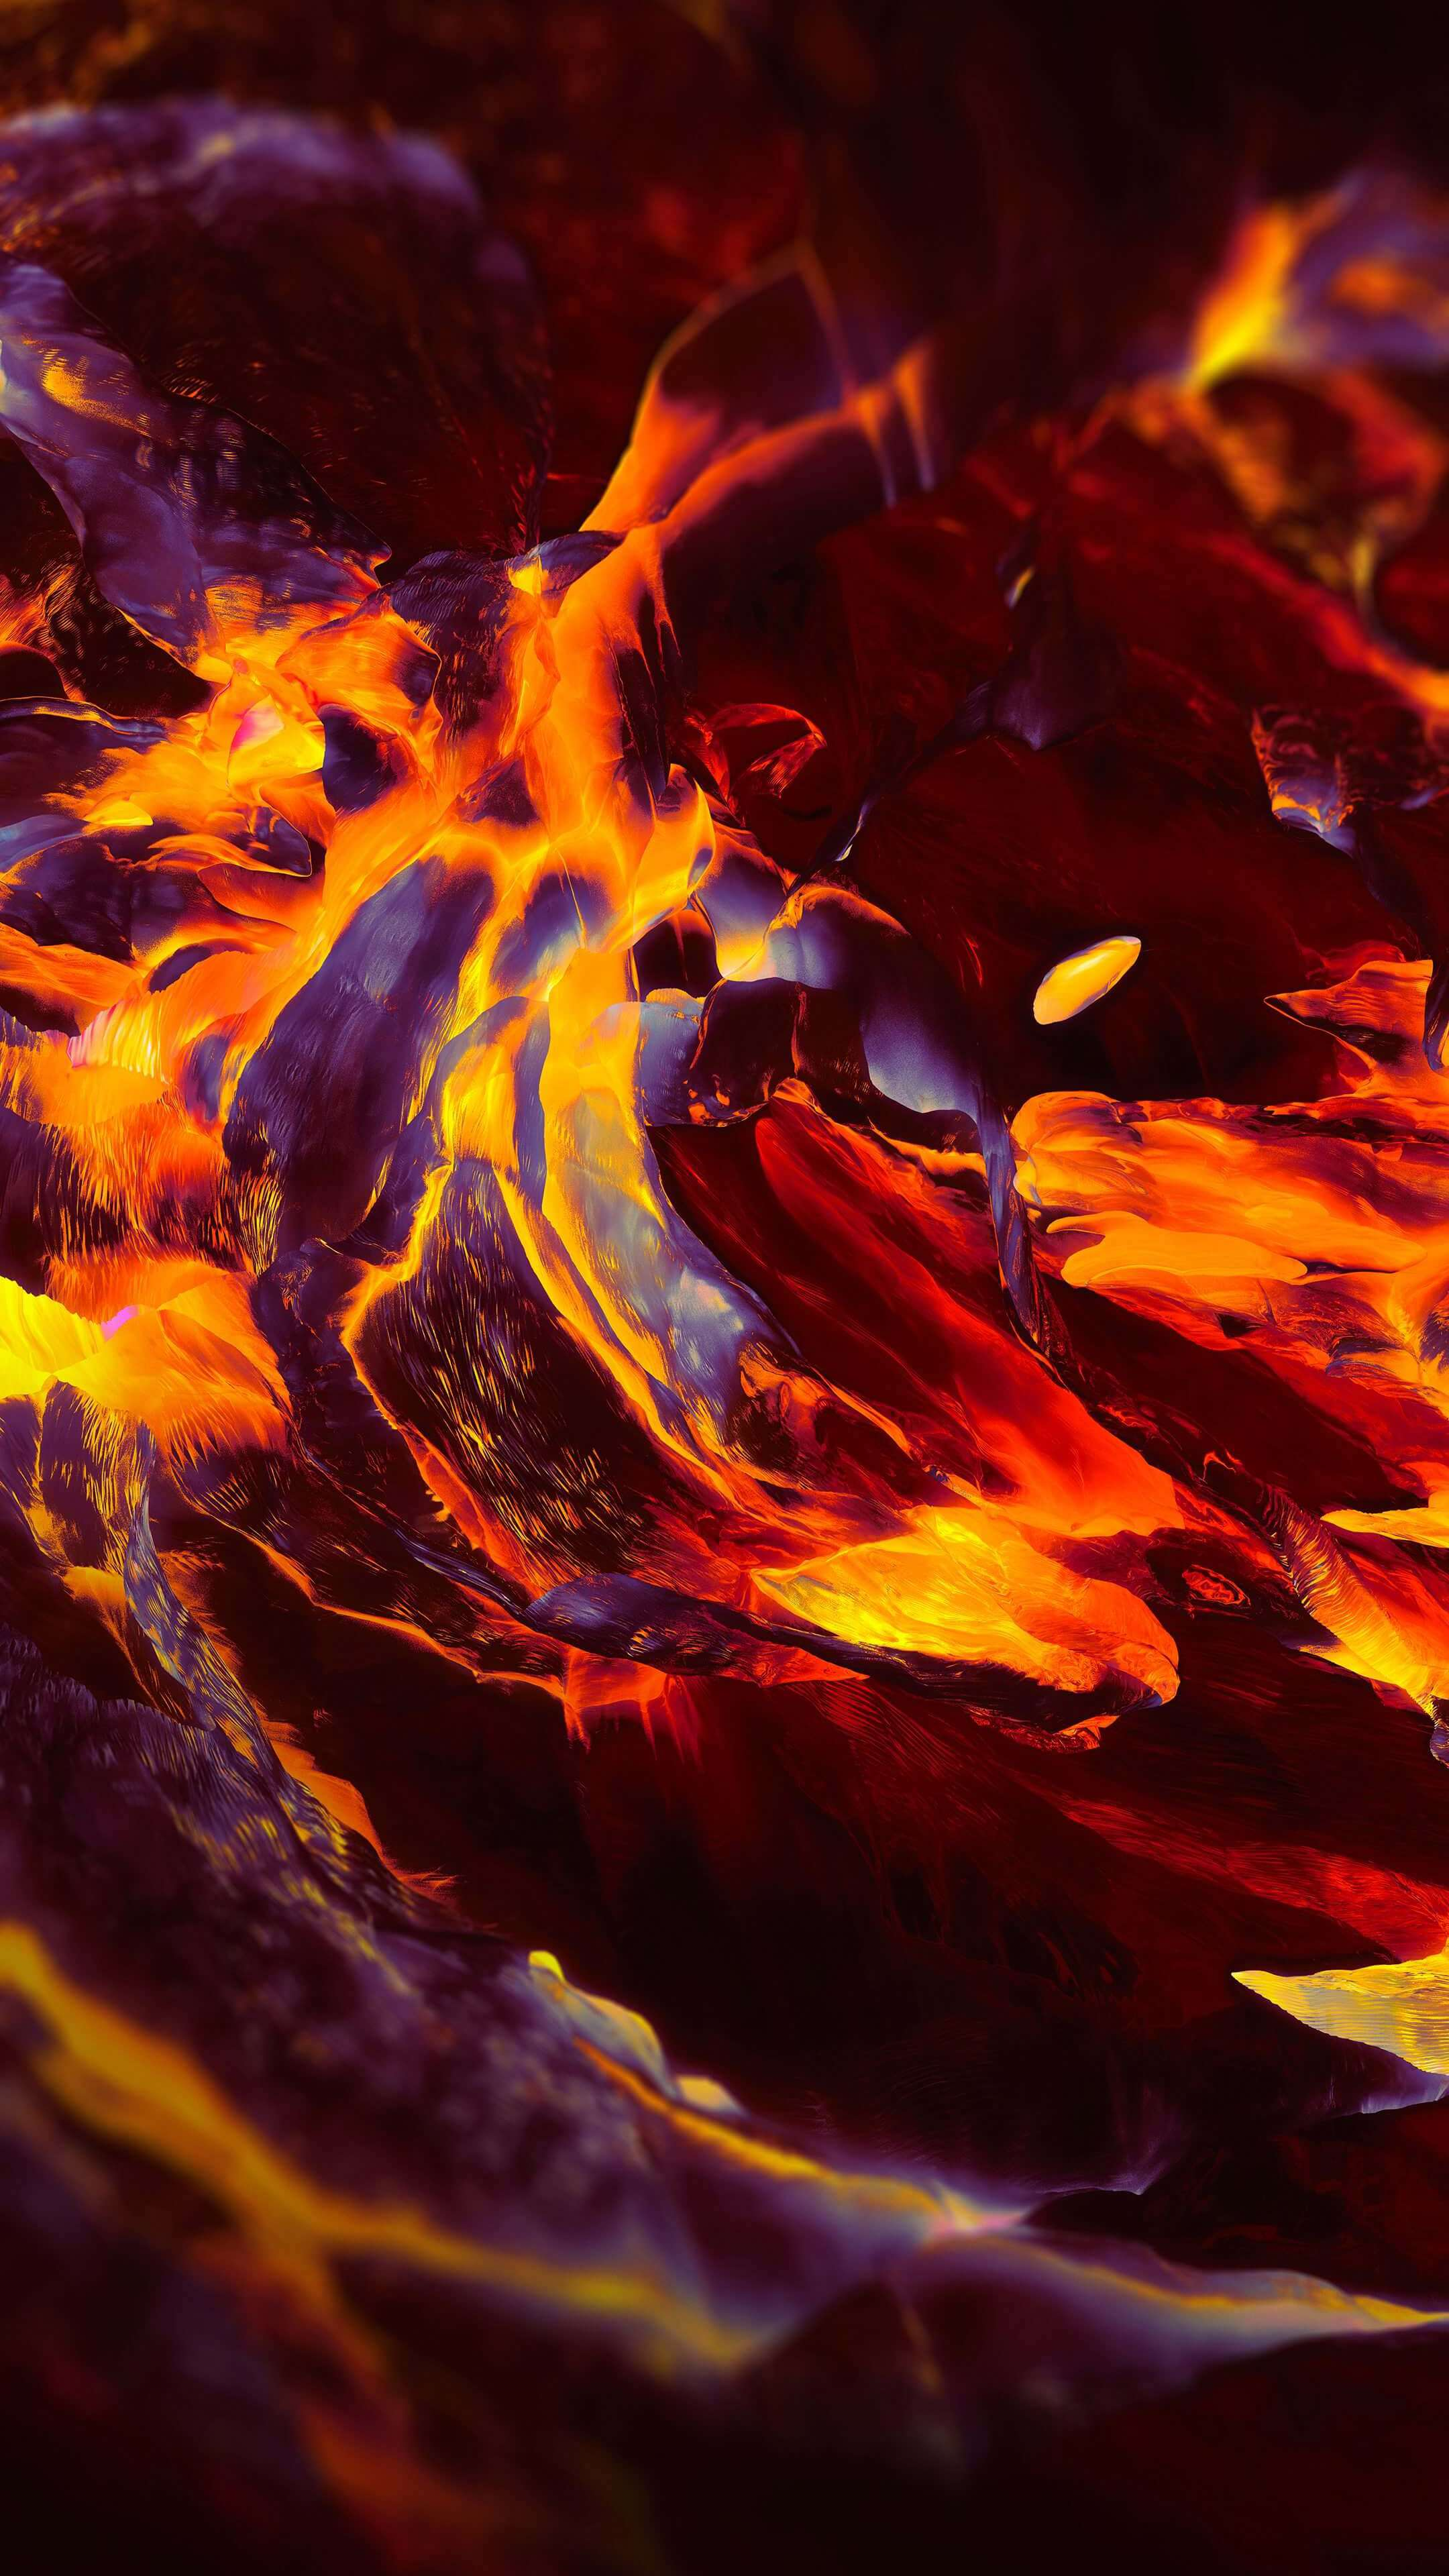 OnePlus Fire Art iPhone Wallpaper